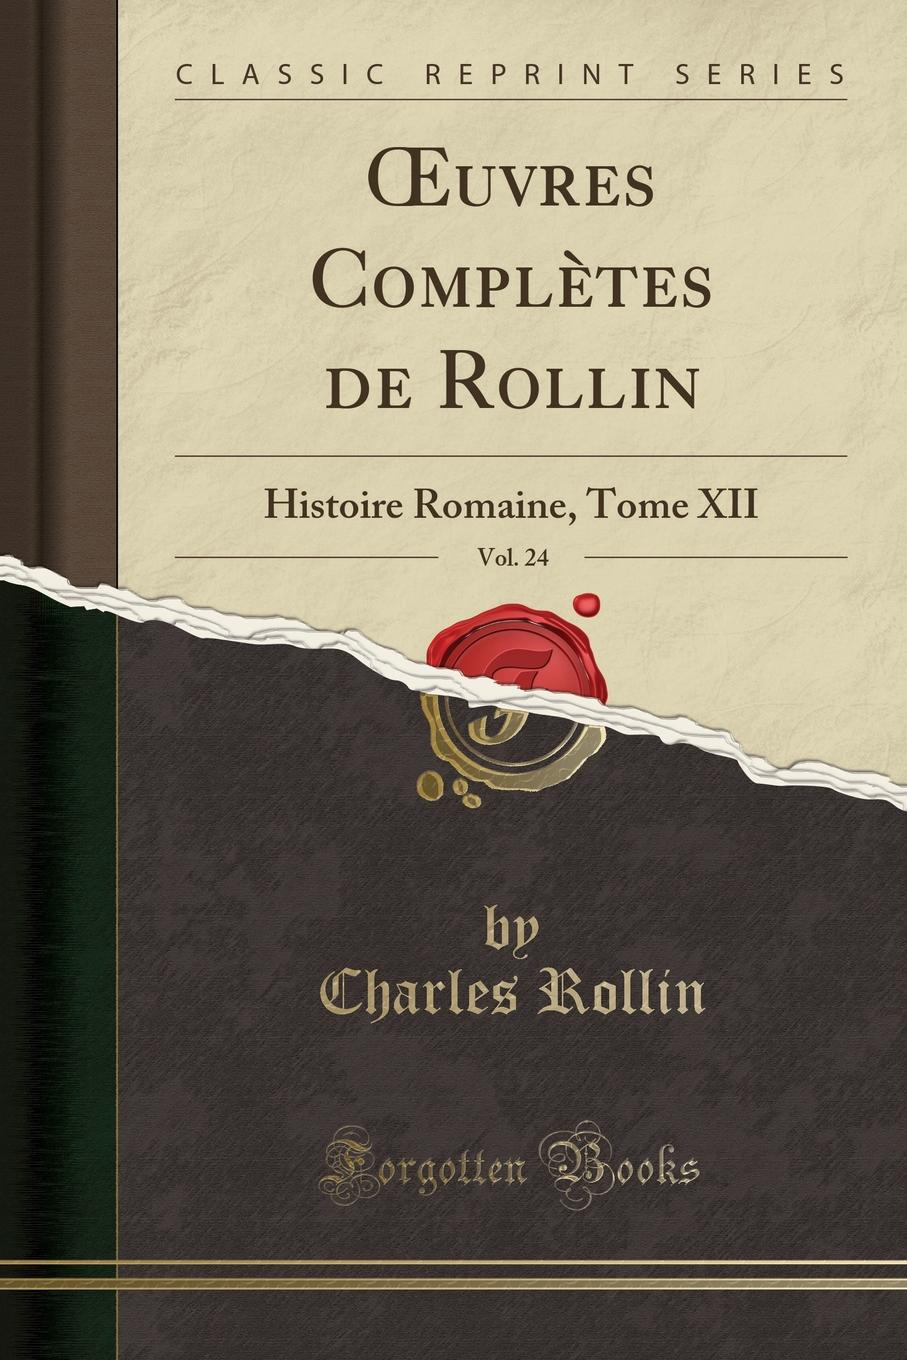 Charles Rollin OEuvres Completes de Rollin, Vol. 24. Histoire Romaine, Tome XII (Classic Reprint)